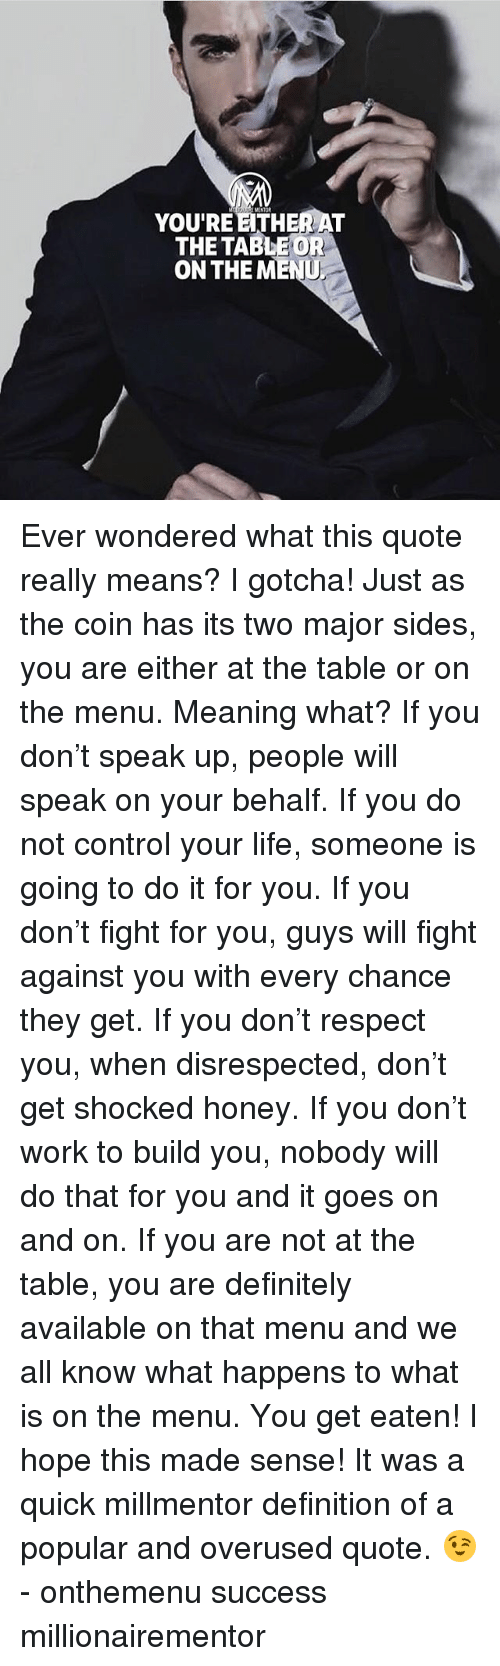 Definitely, Ether, and Life: YOU'RE ETHER AT  THETABLEOR  ON THE MENU Ever wondered what this quote really means? I gotcha! Just as the coin has its two major sides, you are either at the table or on the menu. Meaning what? If you don't speak up, people will speak on your behalf. If you do not control your life, someone is going to do it for you. If you don't fight for you, guys will fight against you with every chance they get. If you don't respect you, when disrespected, don't get shocked honey. If you don't work to build you, nobody will do that for you and it goes on and on. If you are not at the table, you are definitely available on that menu and we all know what happens to what is on the menu. You get eaten! I hope this made sense! It was a quick millmentor definition of a popular and overused quote. 😉 - onthemenu success millionairementor